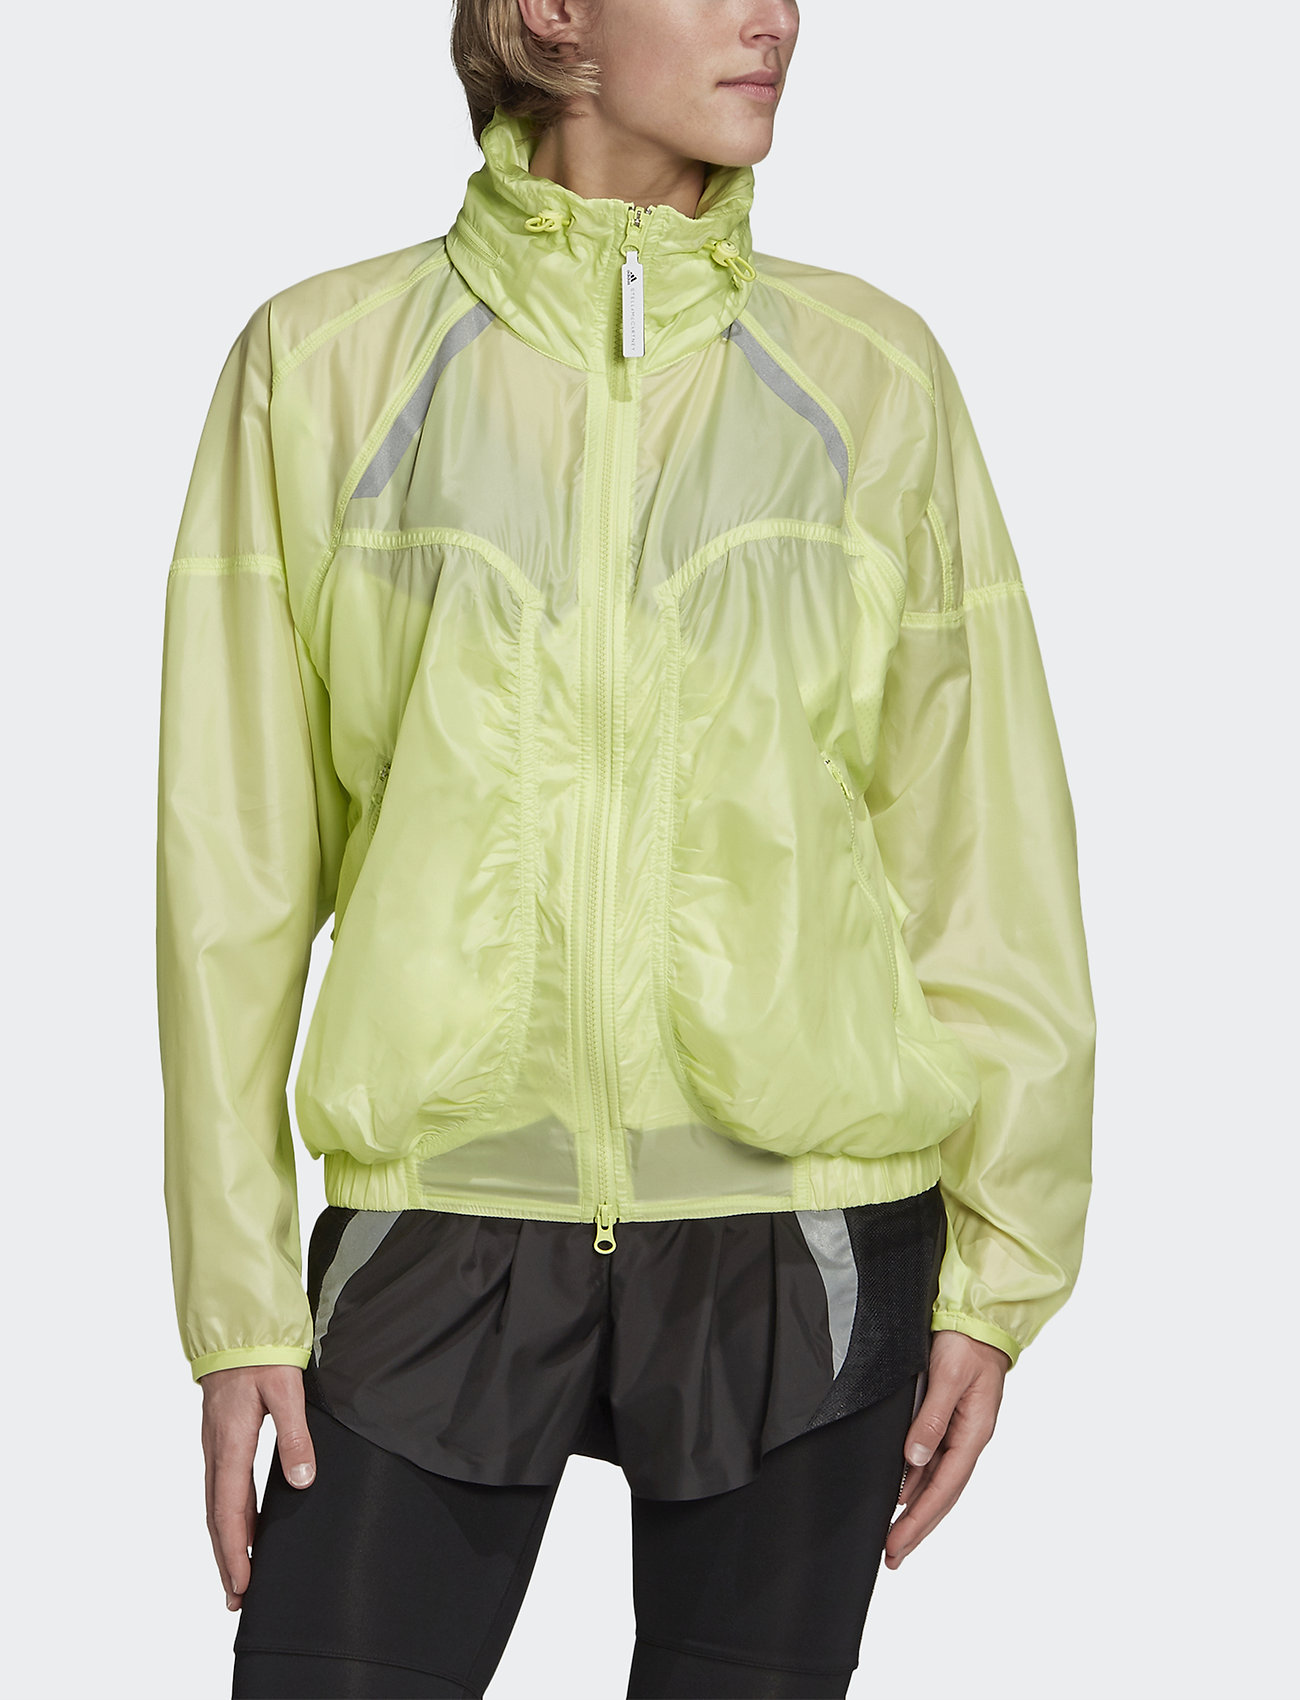 adidas by Stella McCartney - LIGHT JKT - sportjacken - sefrye - 0